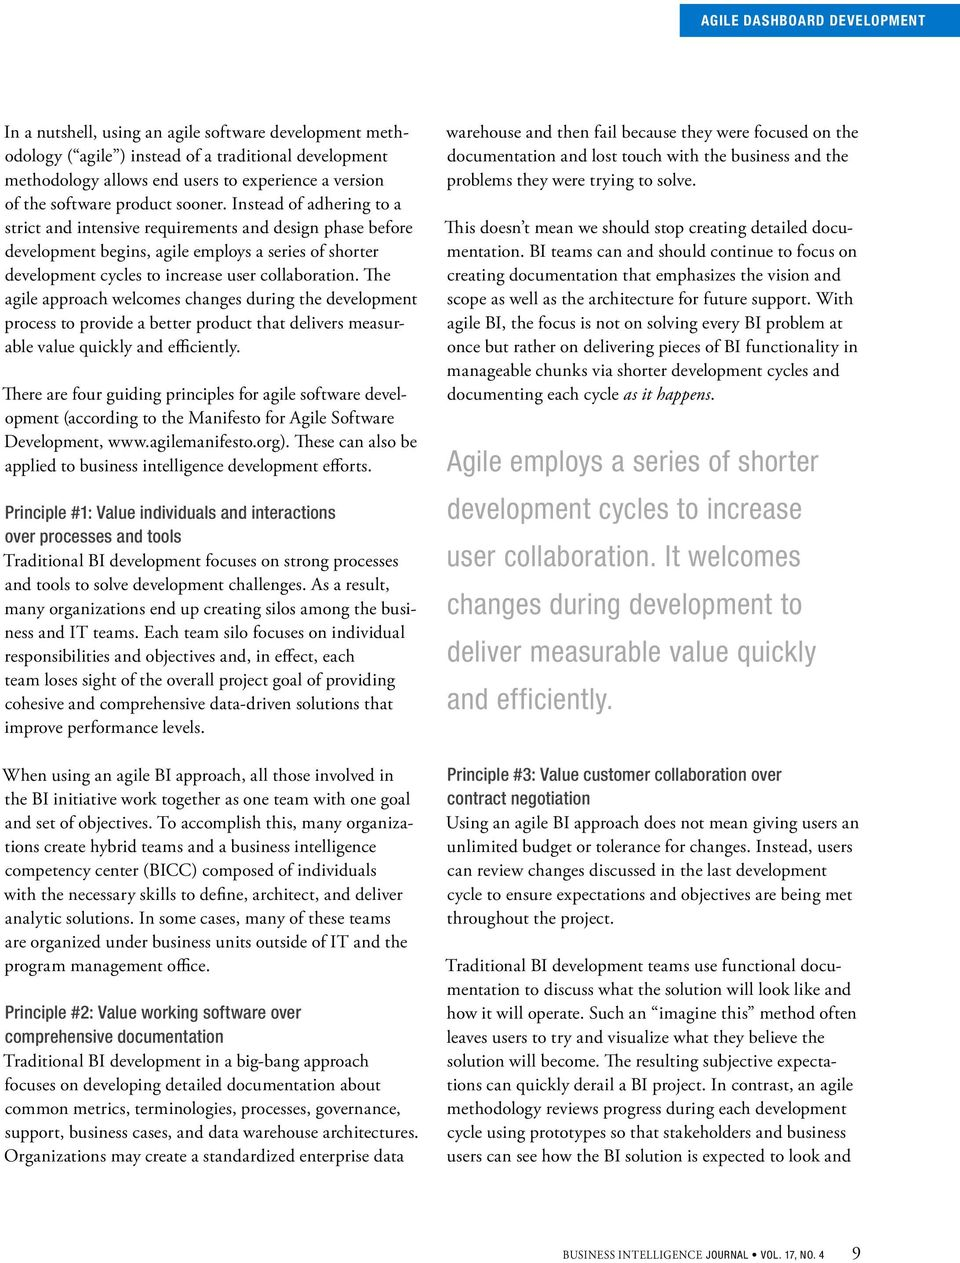 The agile approach welcomes changes during the development process to provide a better product that delivers measurable value quickly and efficiently.